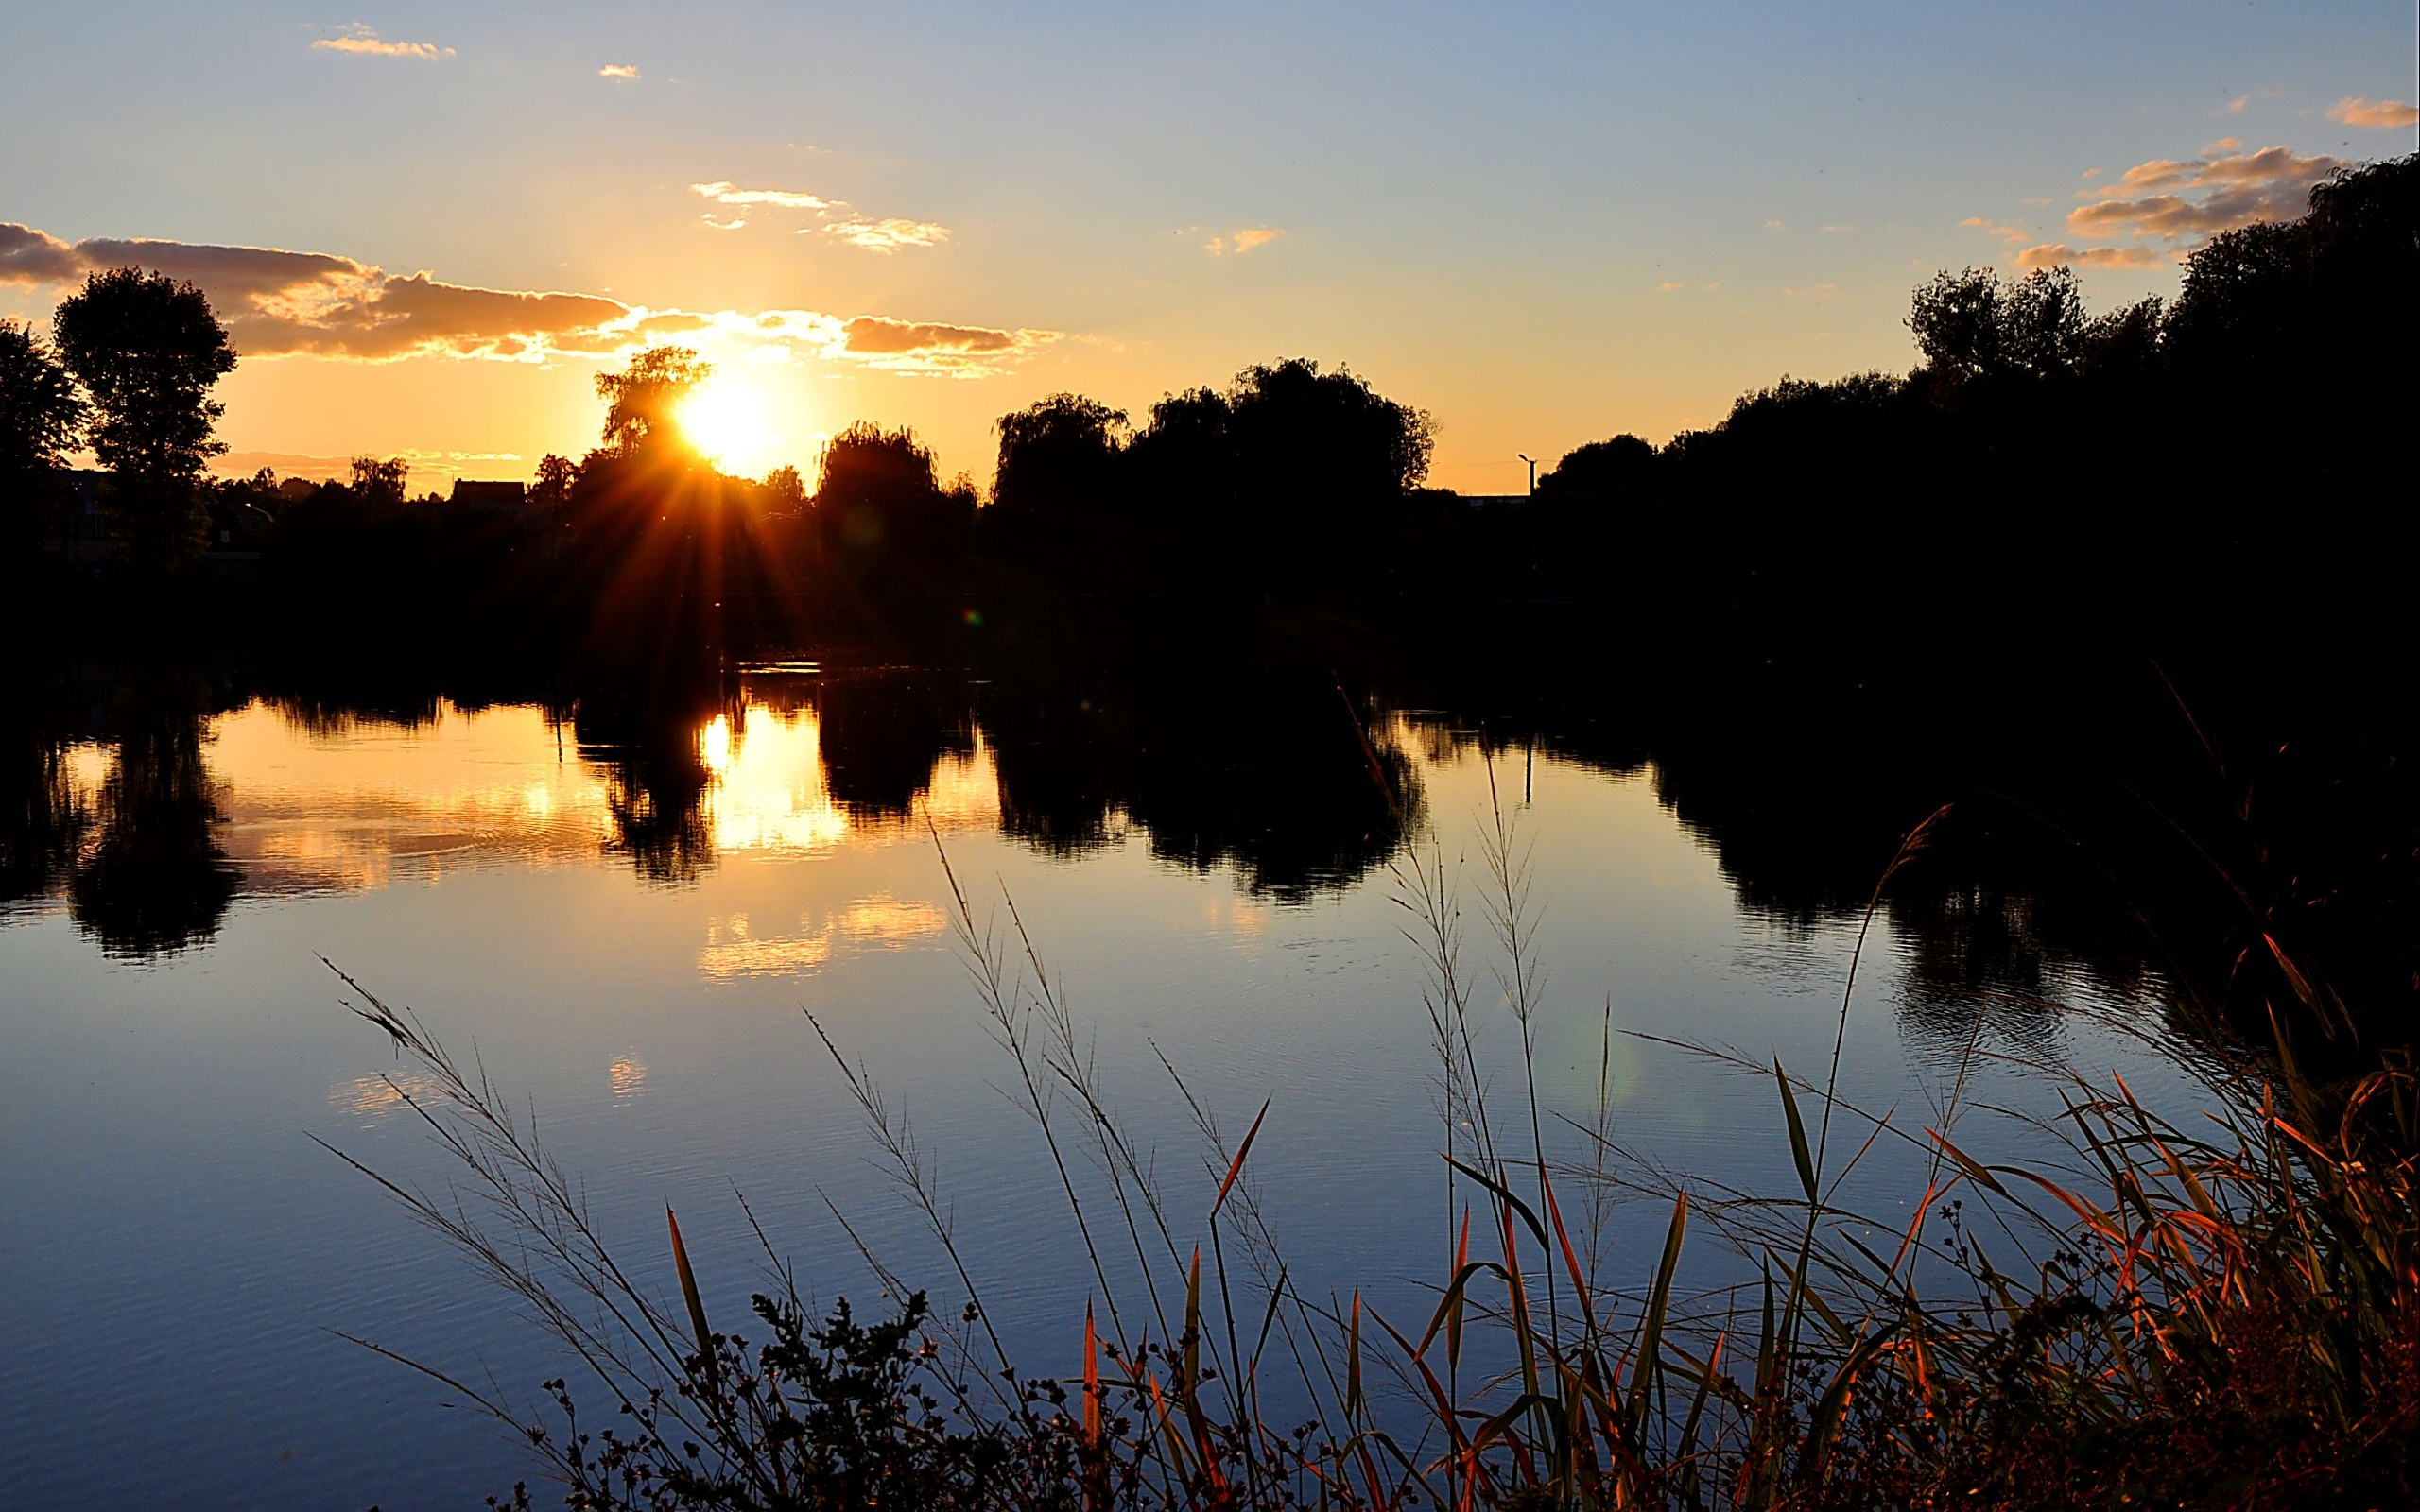 45822 download wallpaper Landscape, Nature, Sunset, Lakes screensavers and pictures for free